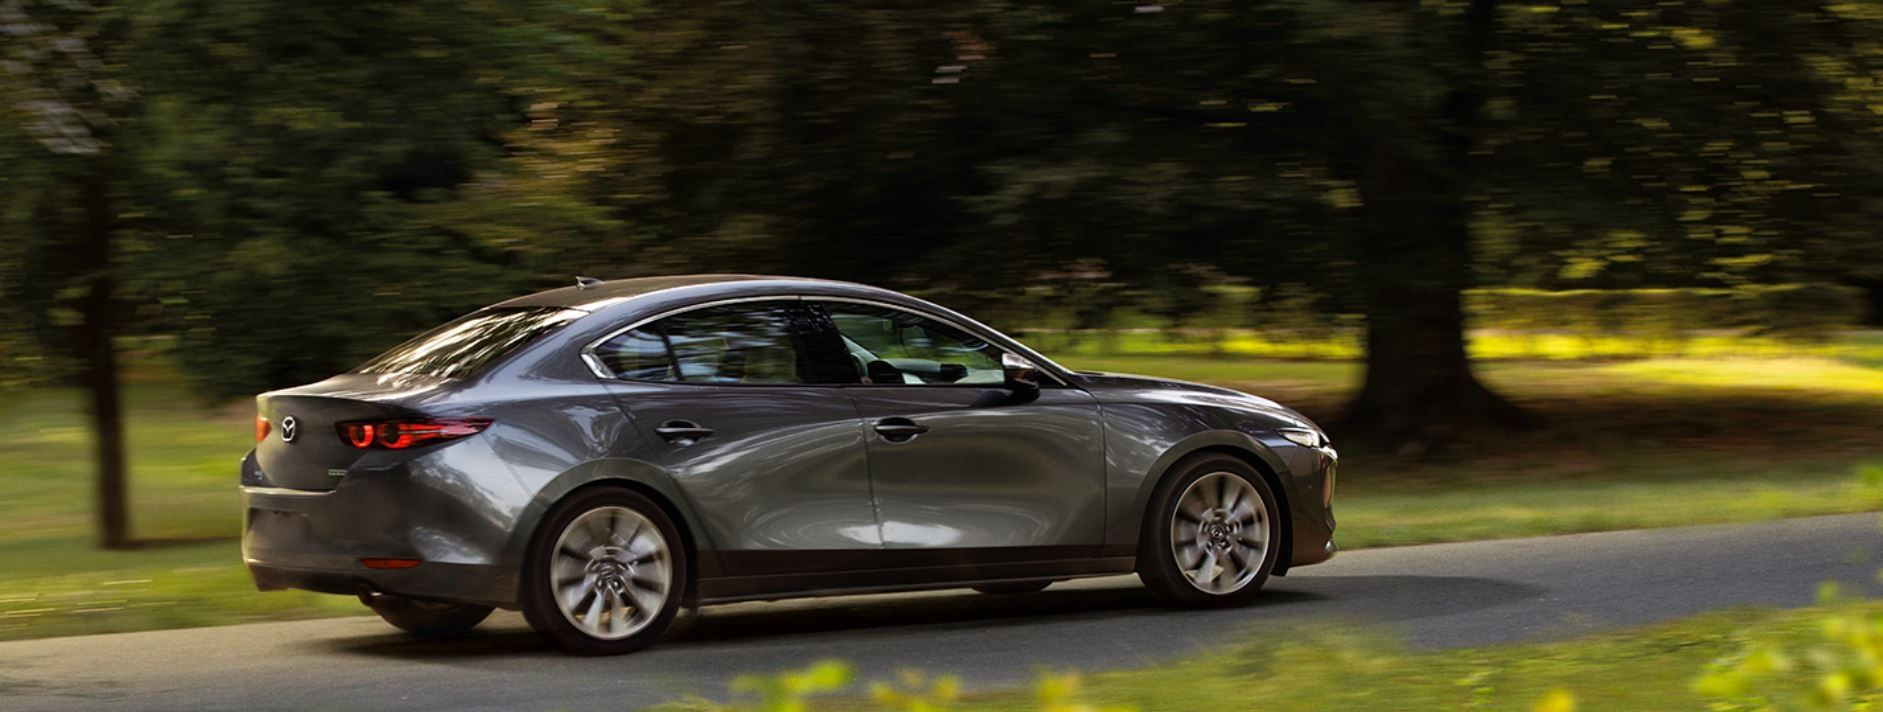 2019 Mazda3 Sedan for Sale near Albany, NY